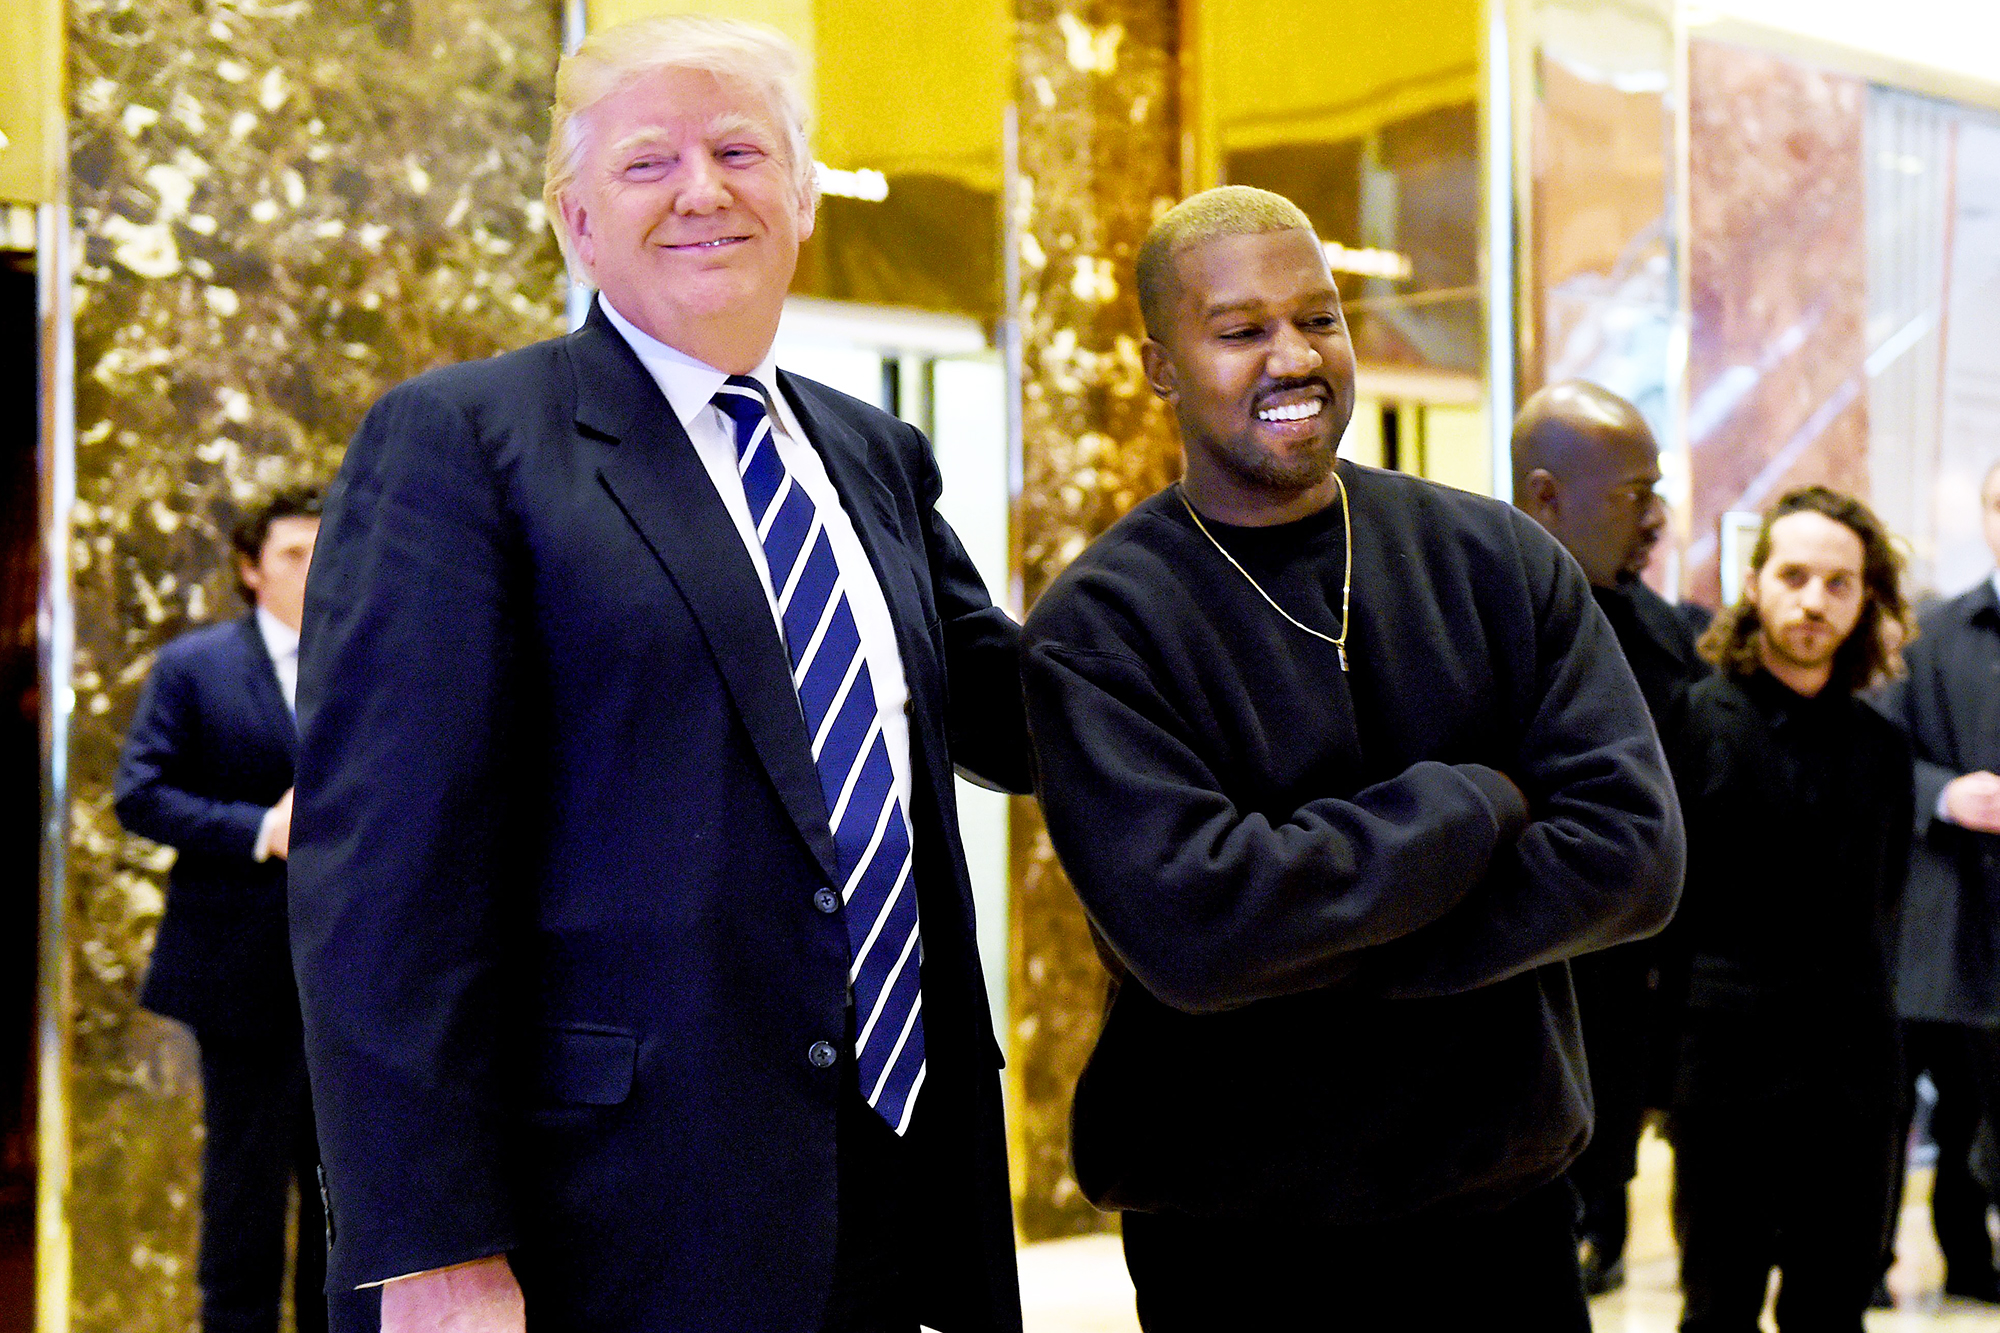 Donald Trump and Kanye West at Trump Tower in New York City, on Dec. 13, 2016.